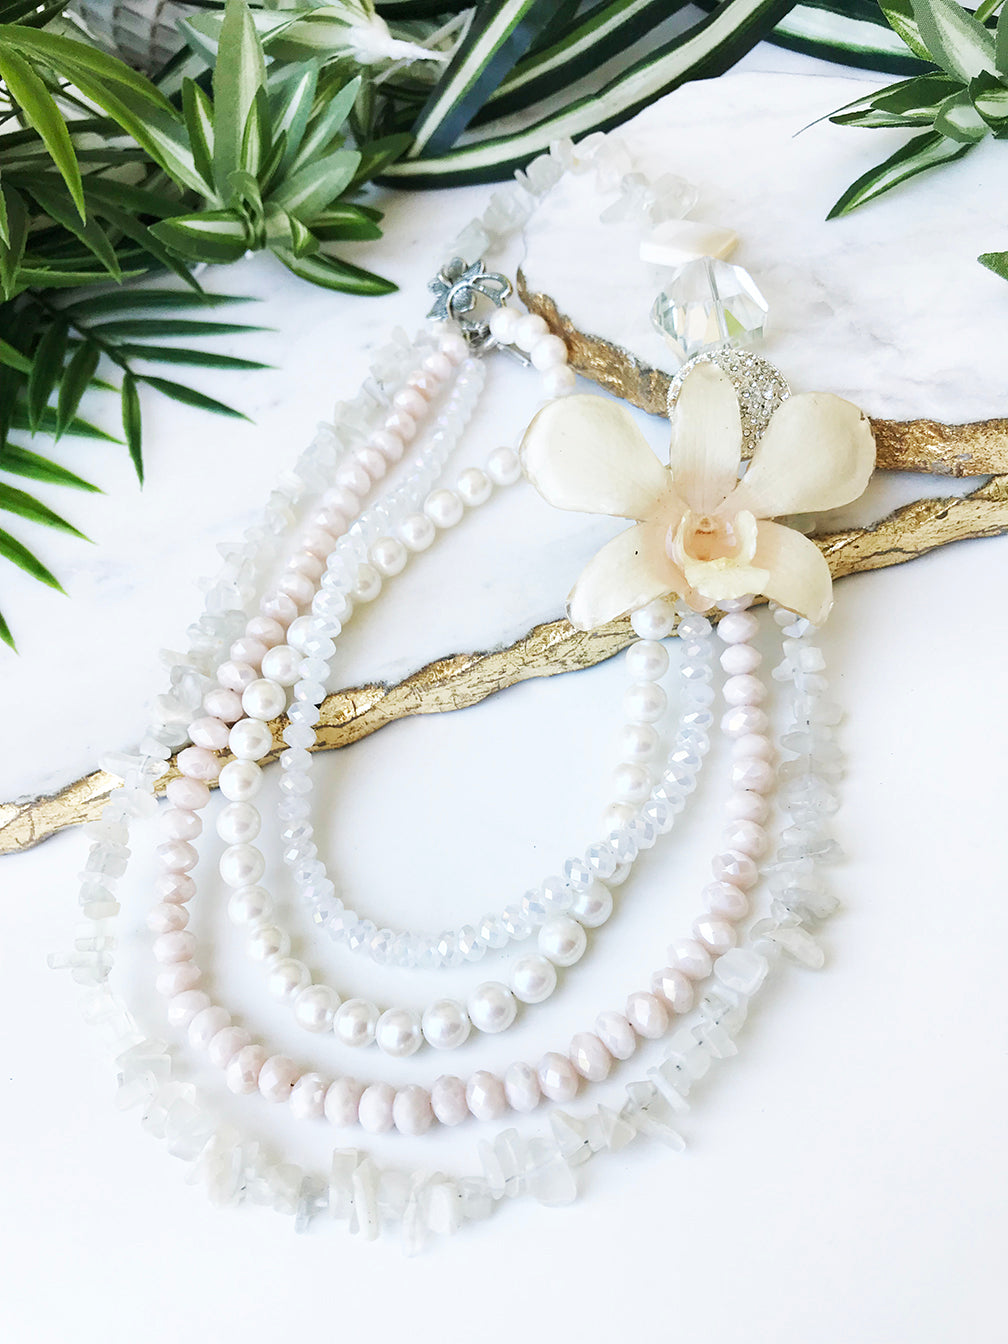 bloom tiered necklace - BL-T-011-NL